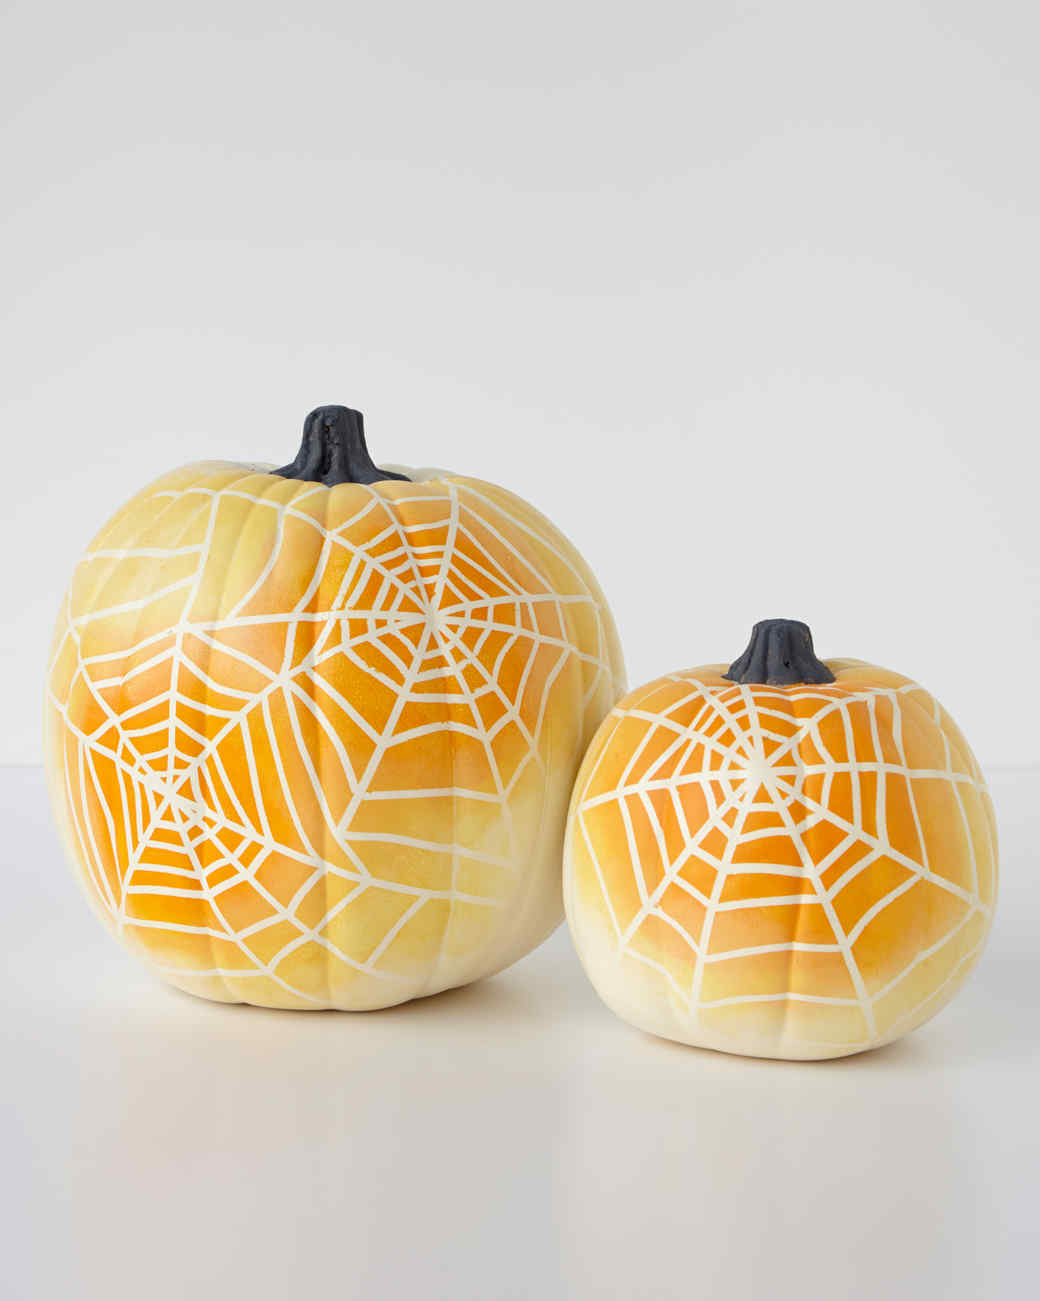 spider-web-pumpkin-beauty-1-1014.jpg